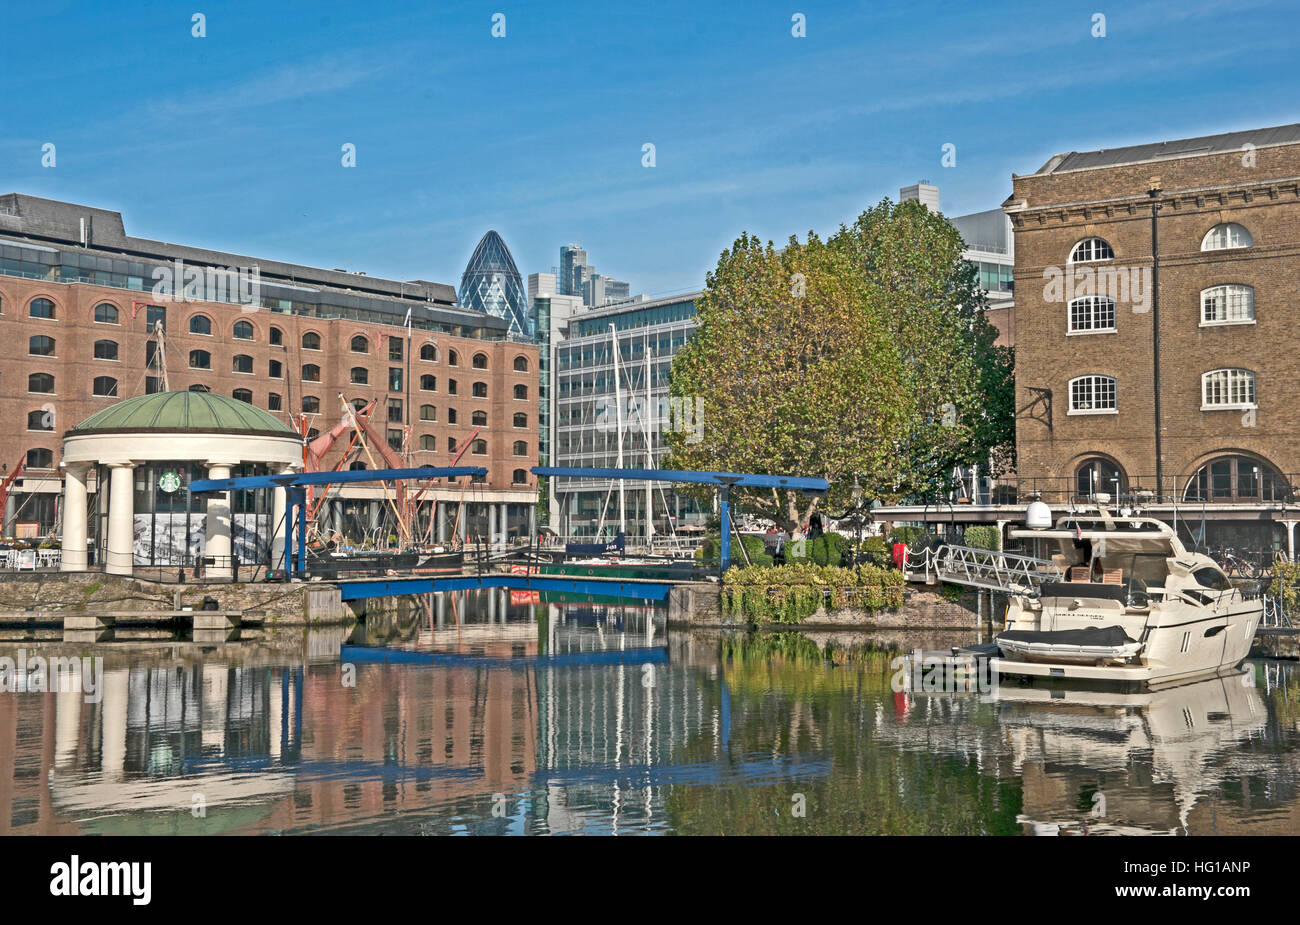 St Katharine's Dock, Wapping, River Thames, London; England, - Stock Image